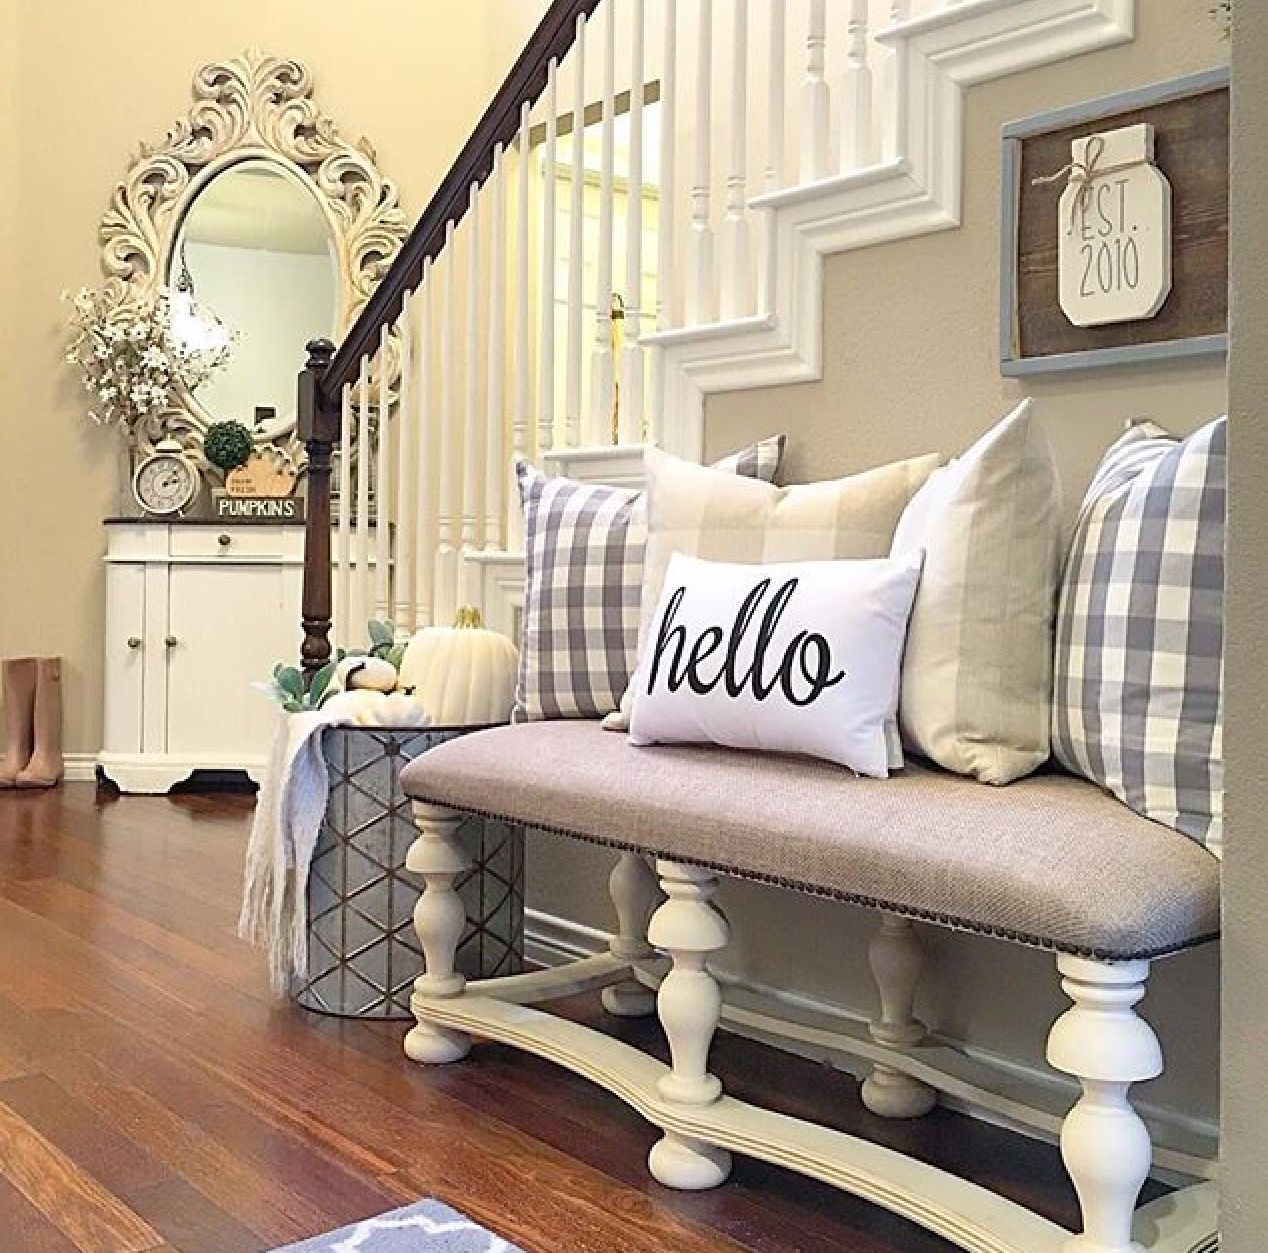 Elegant Foyer Benches : Entry decorating ideas furniture home decor